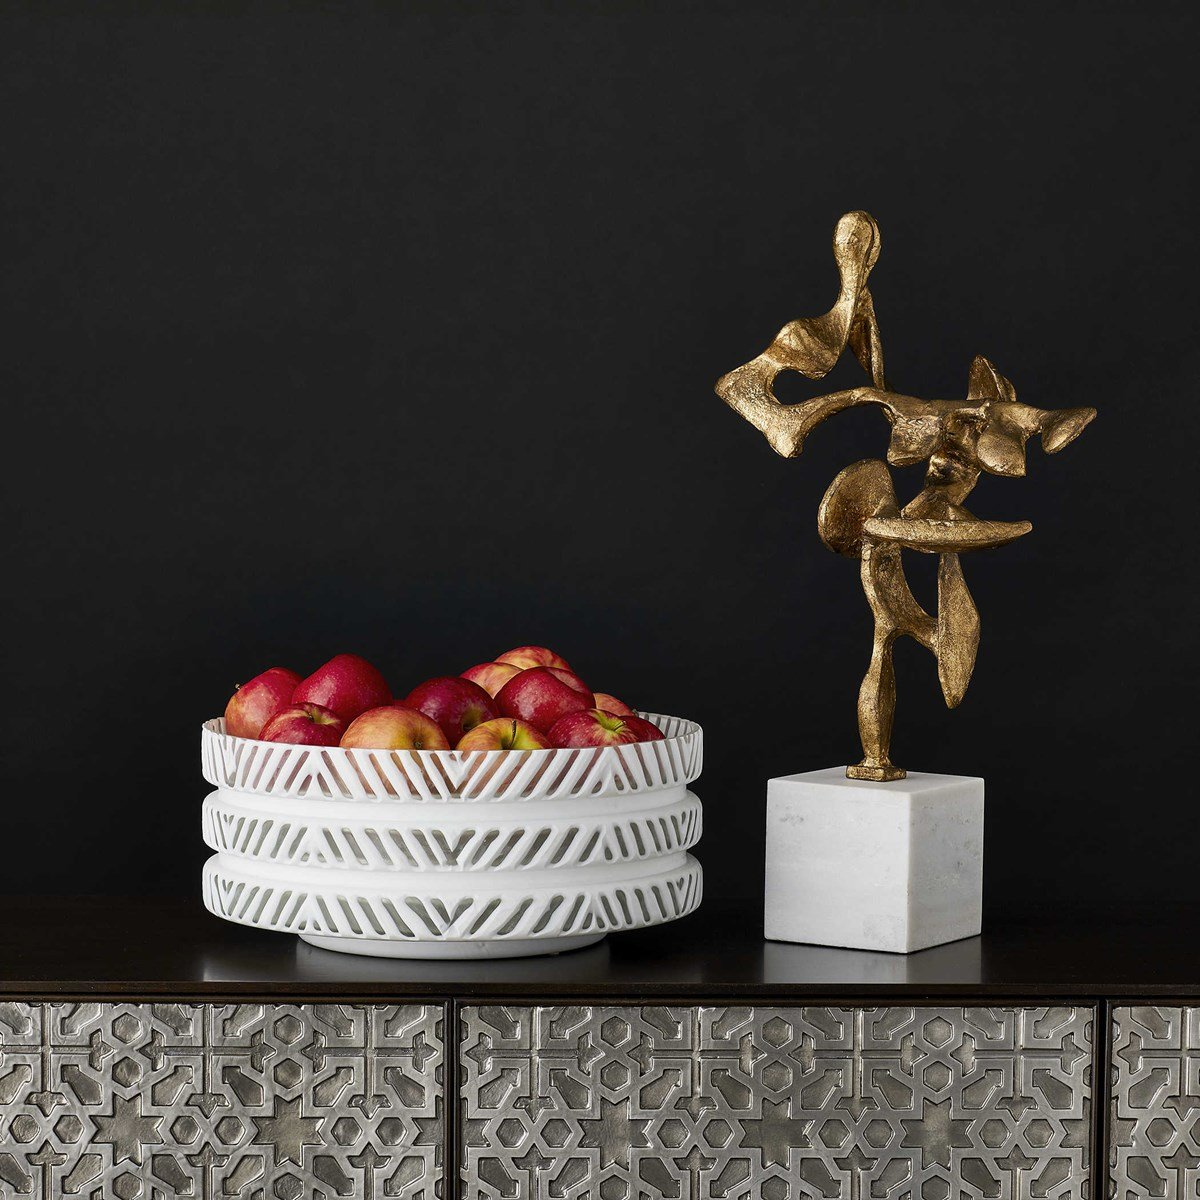 Gold and marble abstract sculpture on trend for 2021